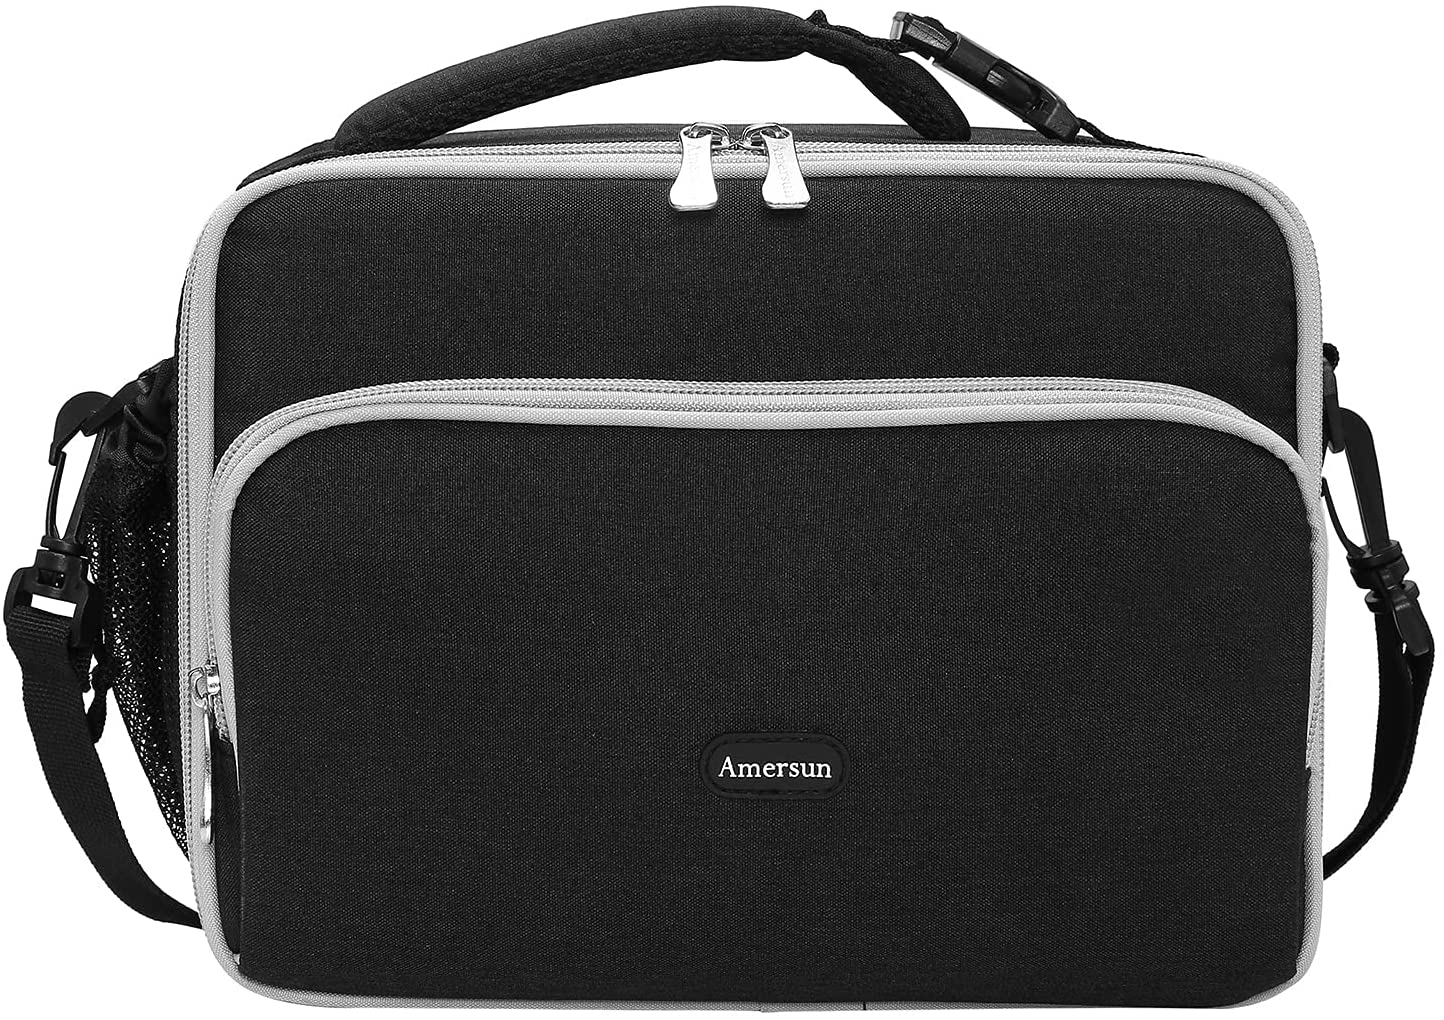 Amersun Lunch Sale SALE% OFF Bag for Kids Insulated 1 year warranty Durable - Padded Box